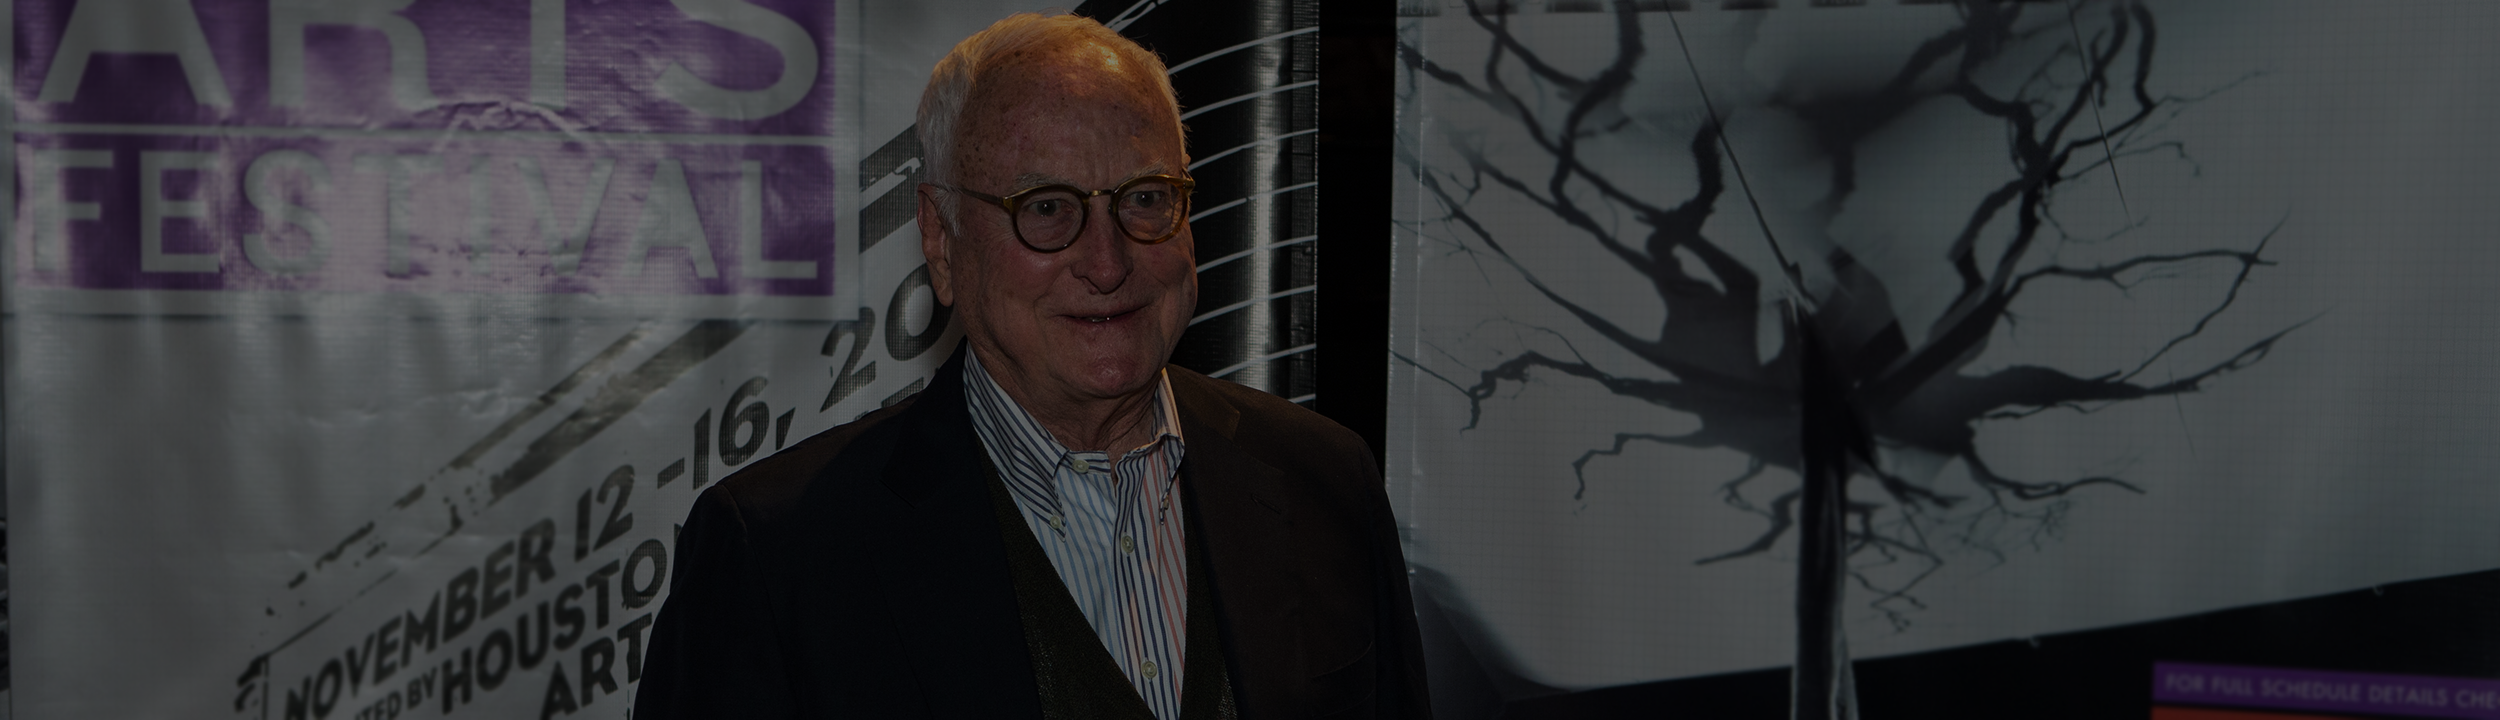 2014 Levantine Award Winner James Ivory